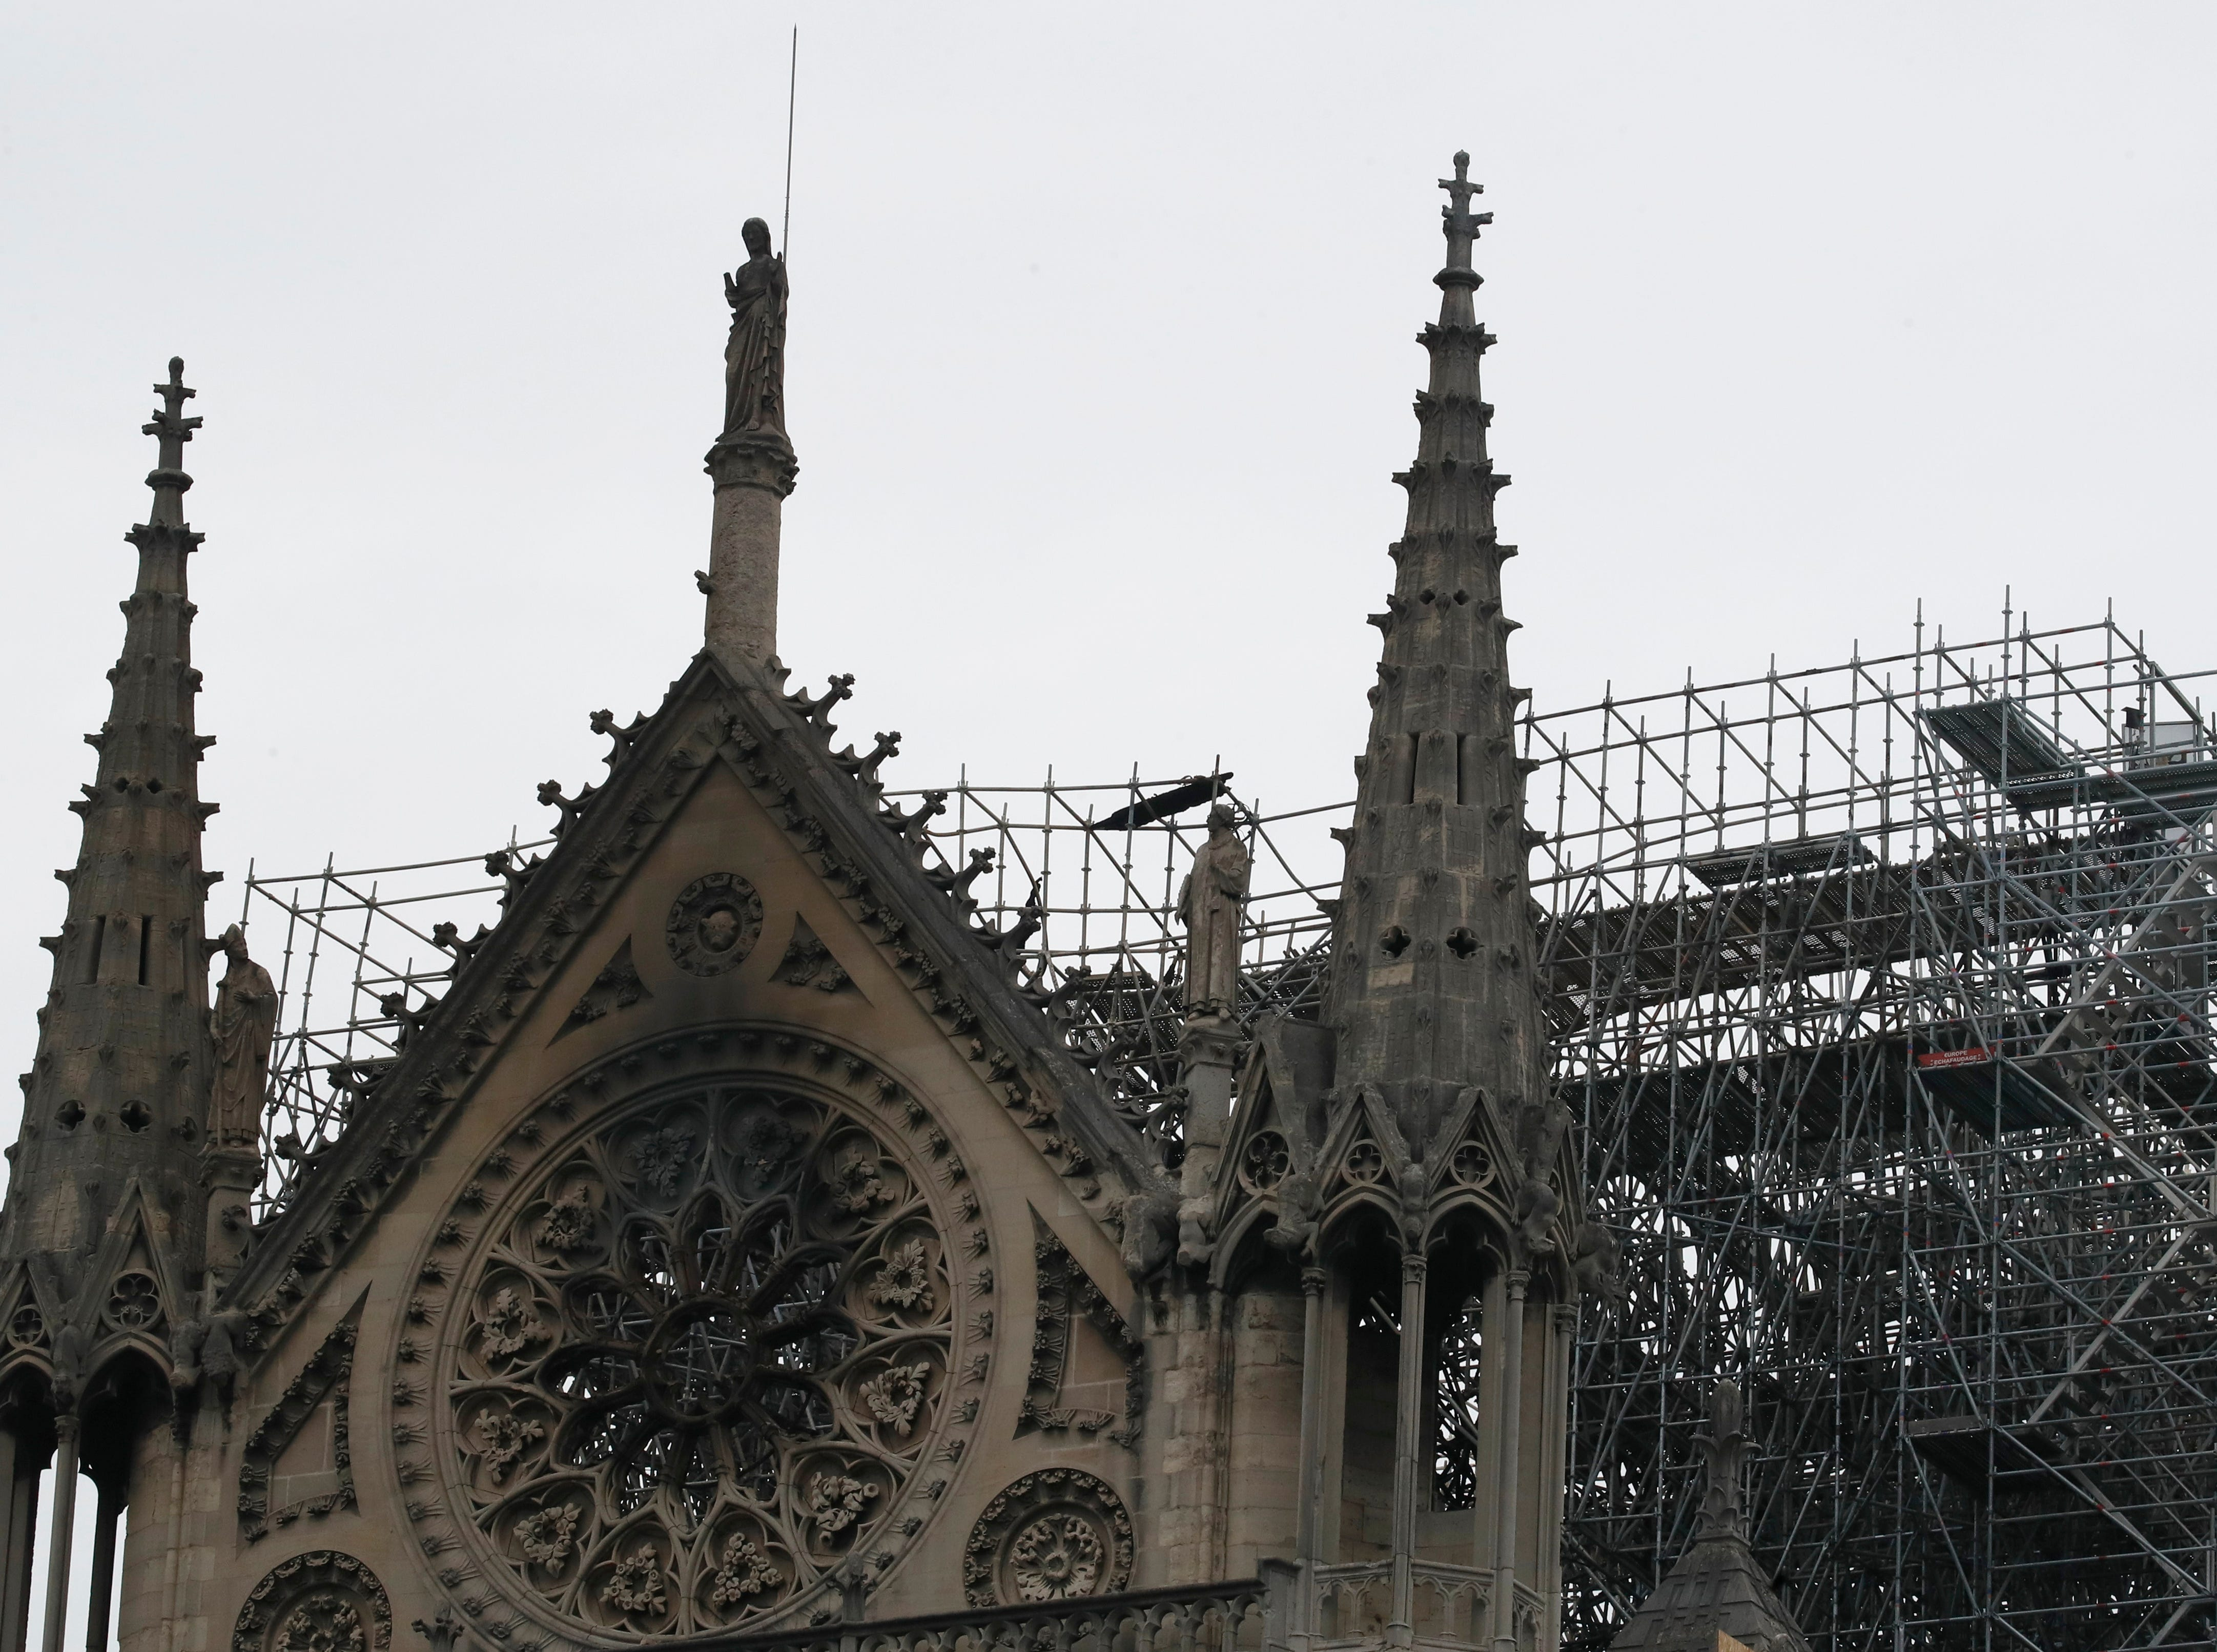 View of the Notre Dame cathedral after the fire in Paris, Tuesday, April 16, 2019. Experts are assessing the blackened shell of Paris' iconic Notre Dame cathedral to establish next steps to save what remains after a devastating fire destroyed much of the almost 900-year-old building. With the fire that broke out Monday evening and quickly consumed the cathedral now under control, attention is turning to ensuring the structural integrity of the remaining building. (AP Photo/Christophe Ena)